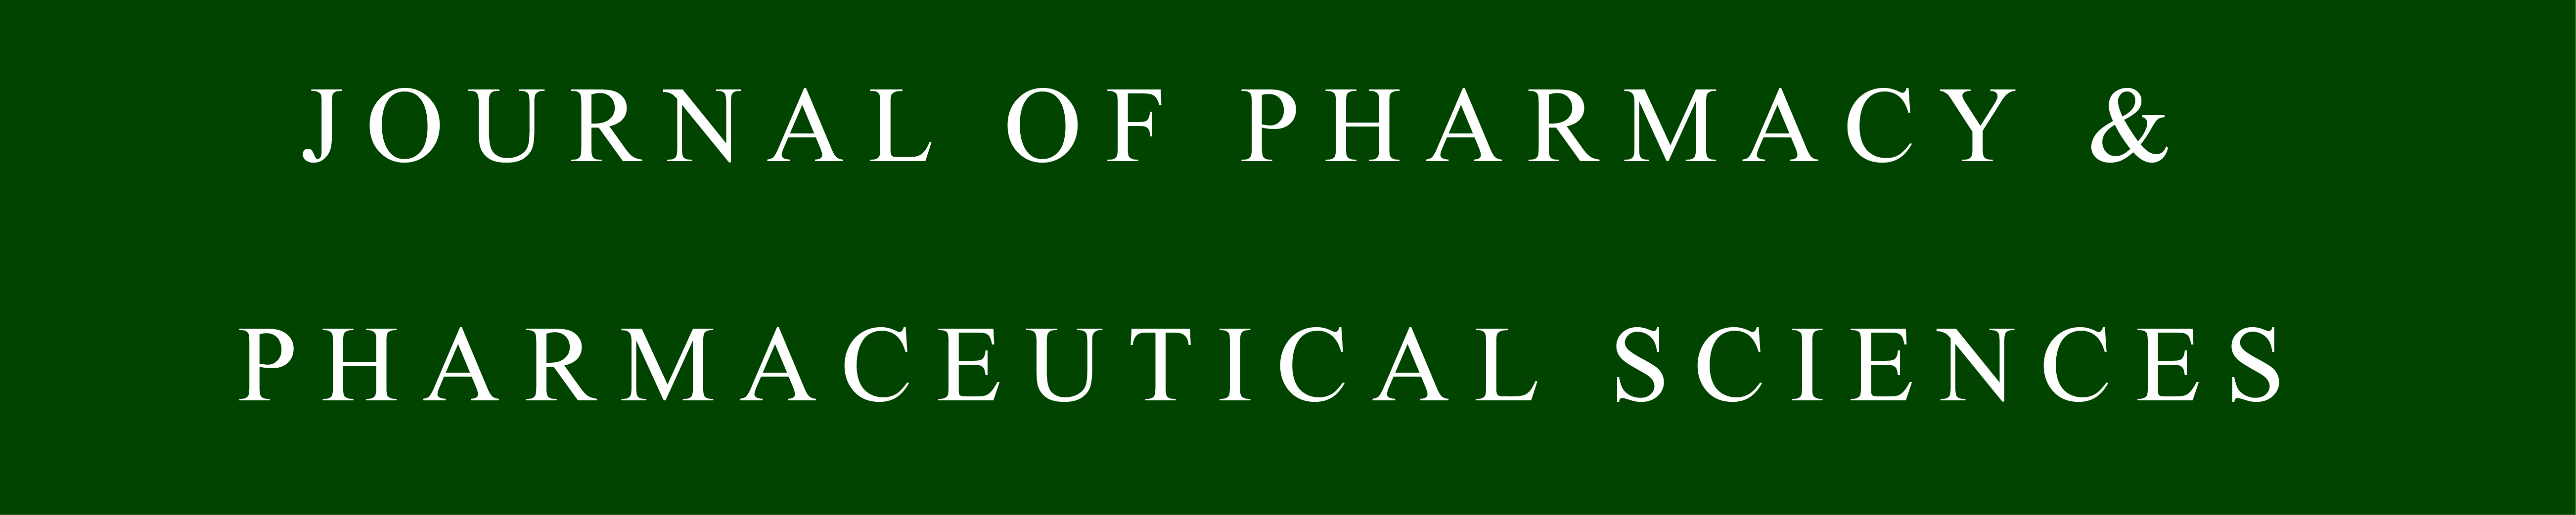 Journal of Pharmacy and Pharmaceutical Sciences logo